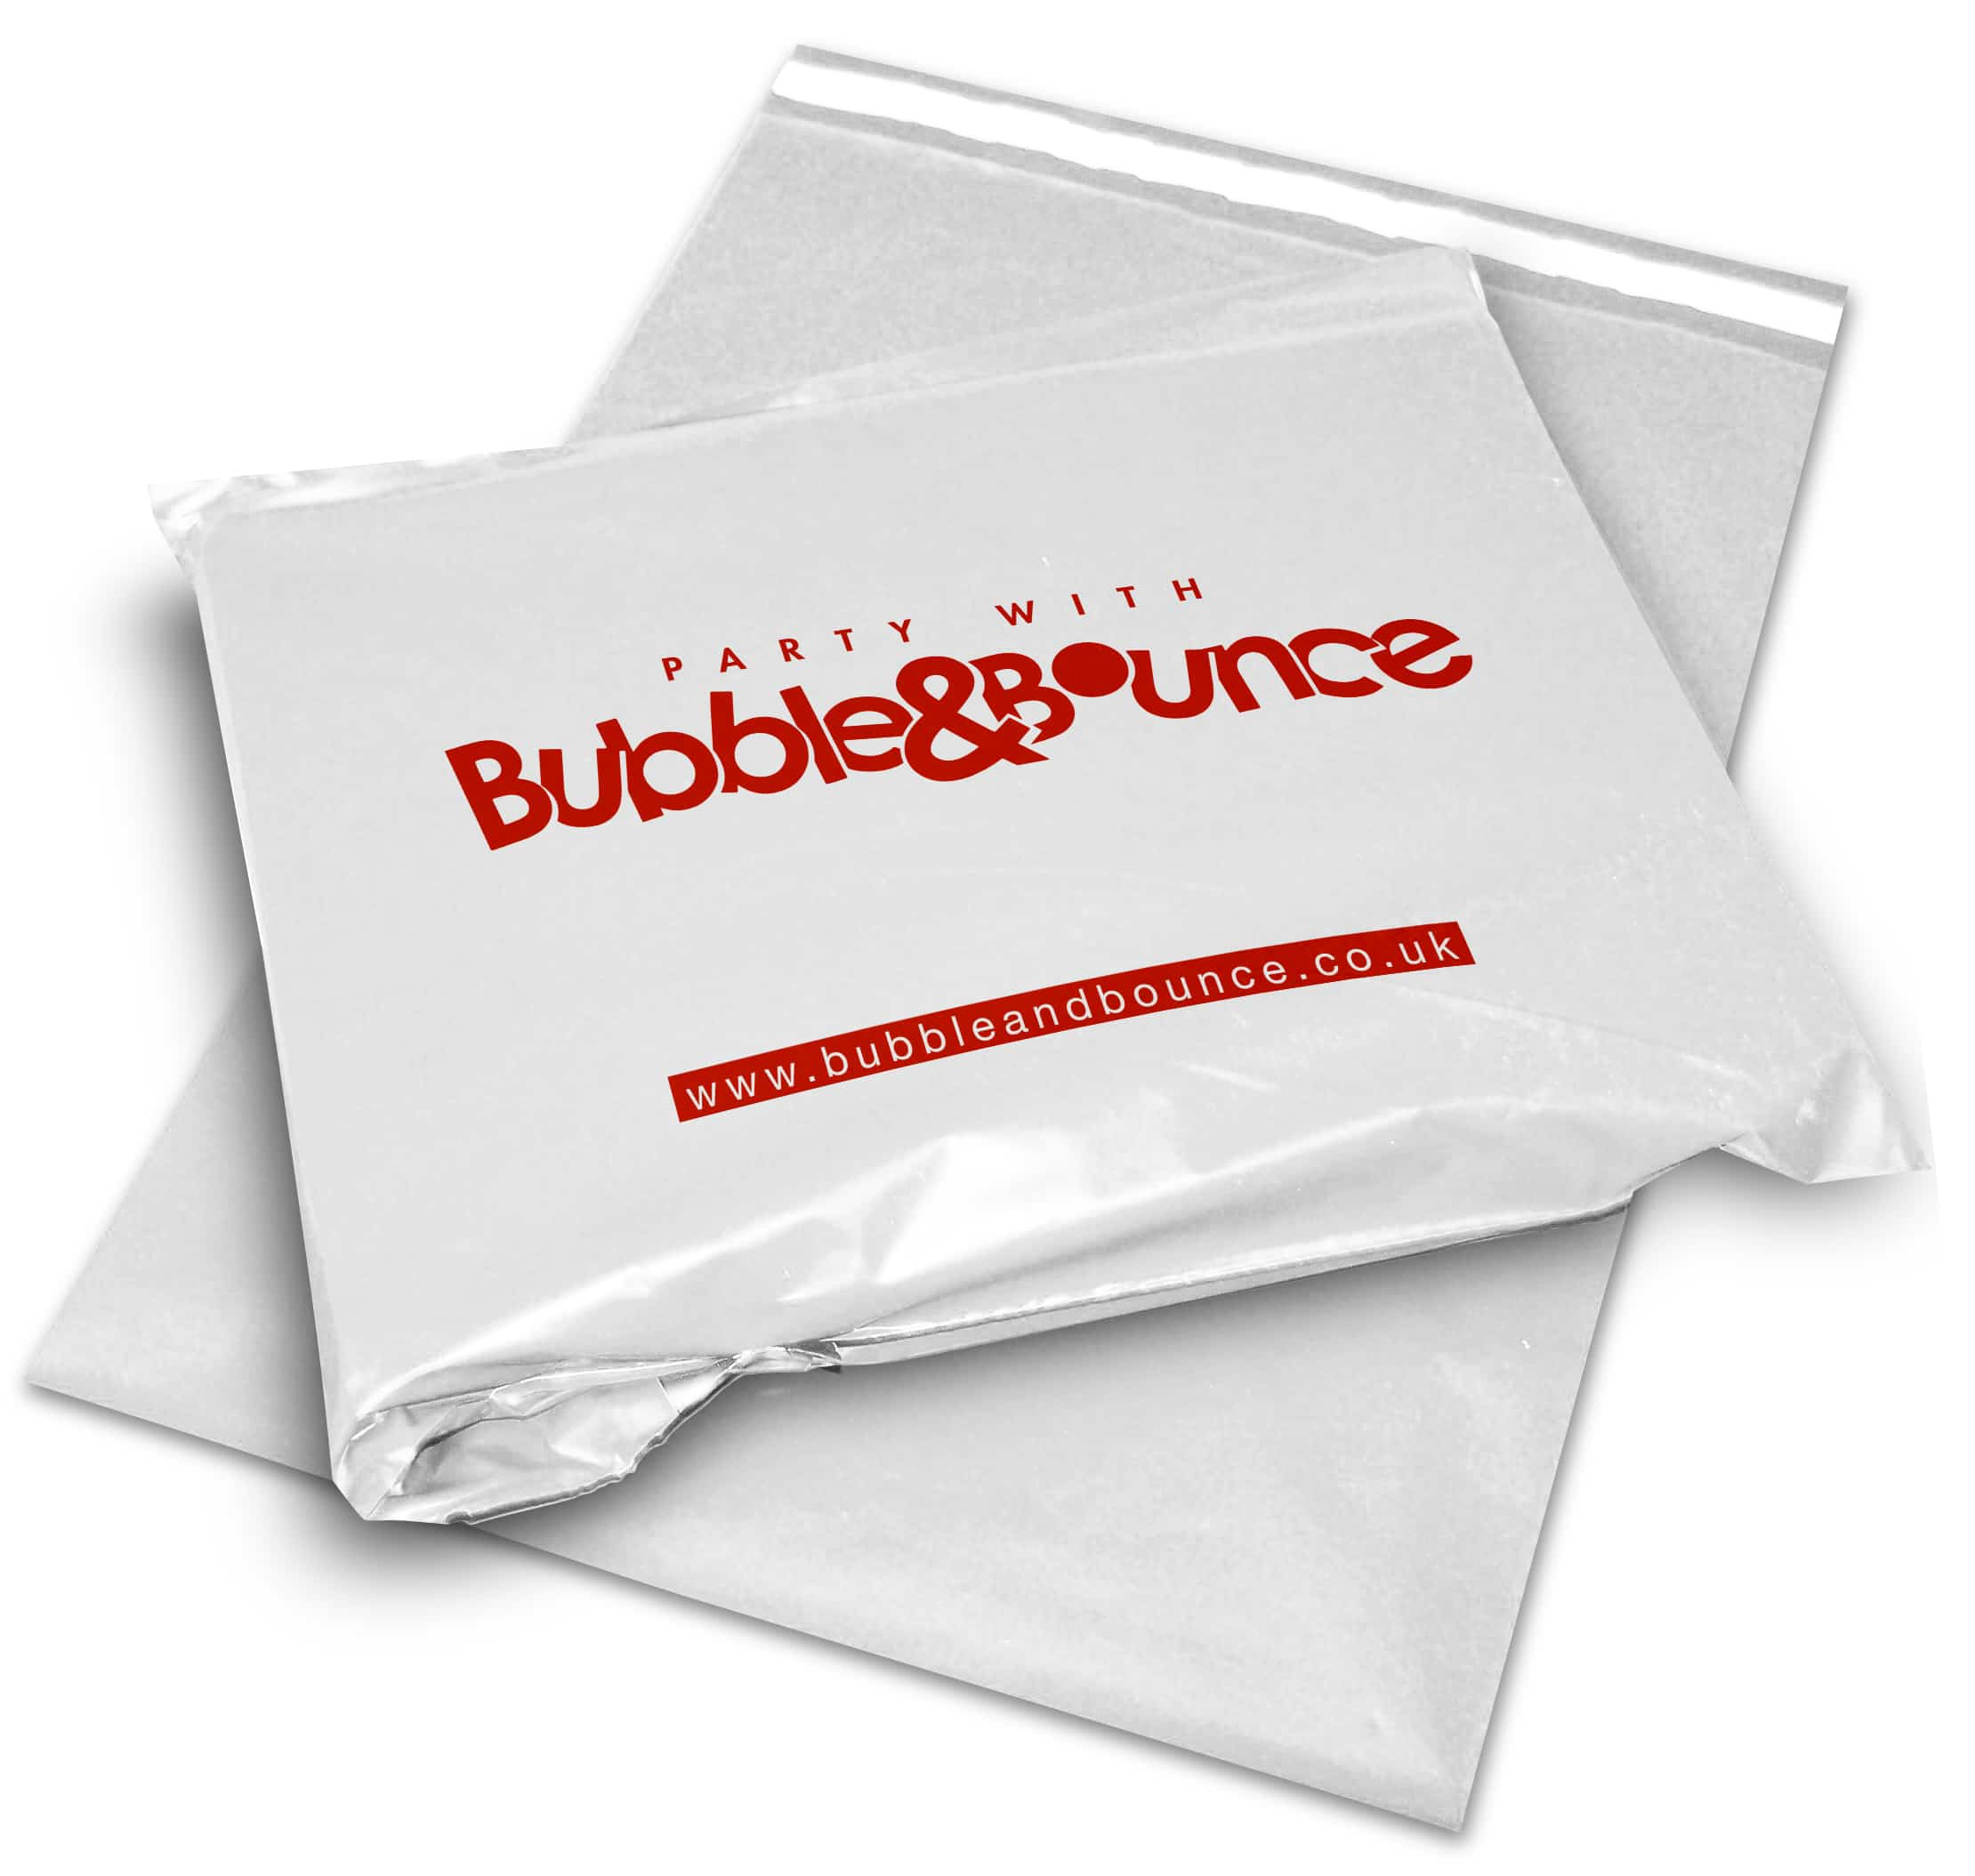 Bubble & Bounce printed mailing and postal bag